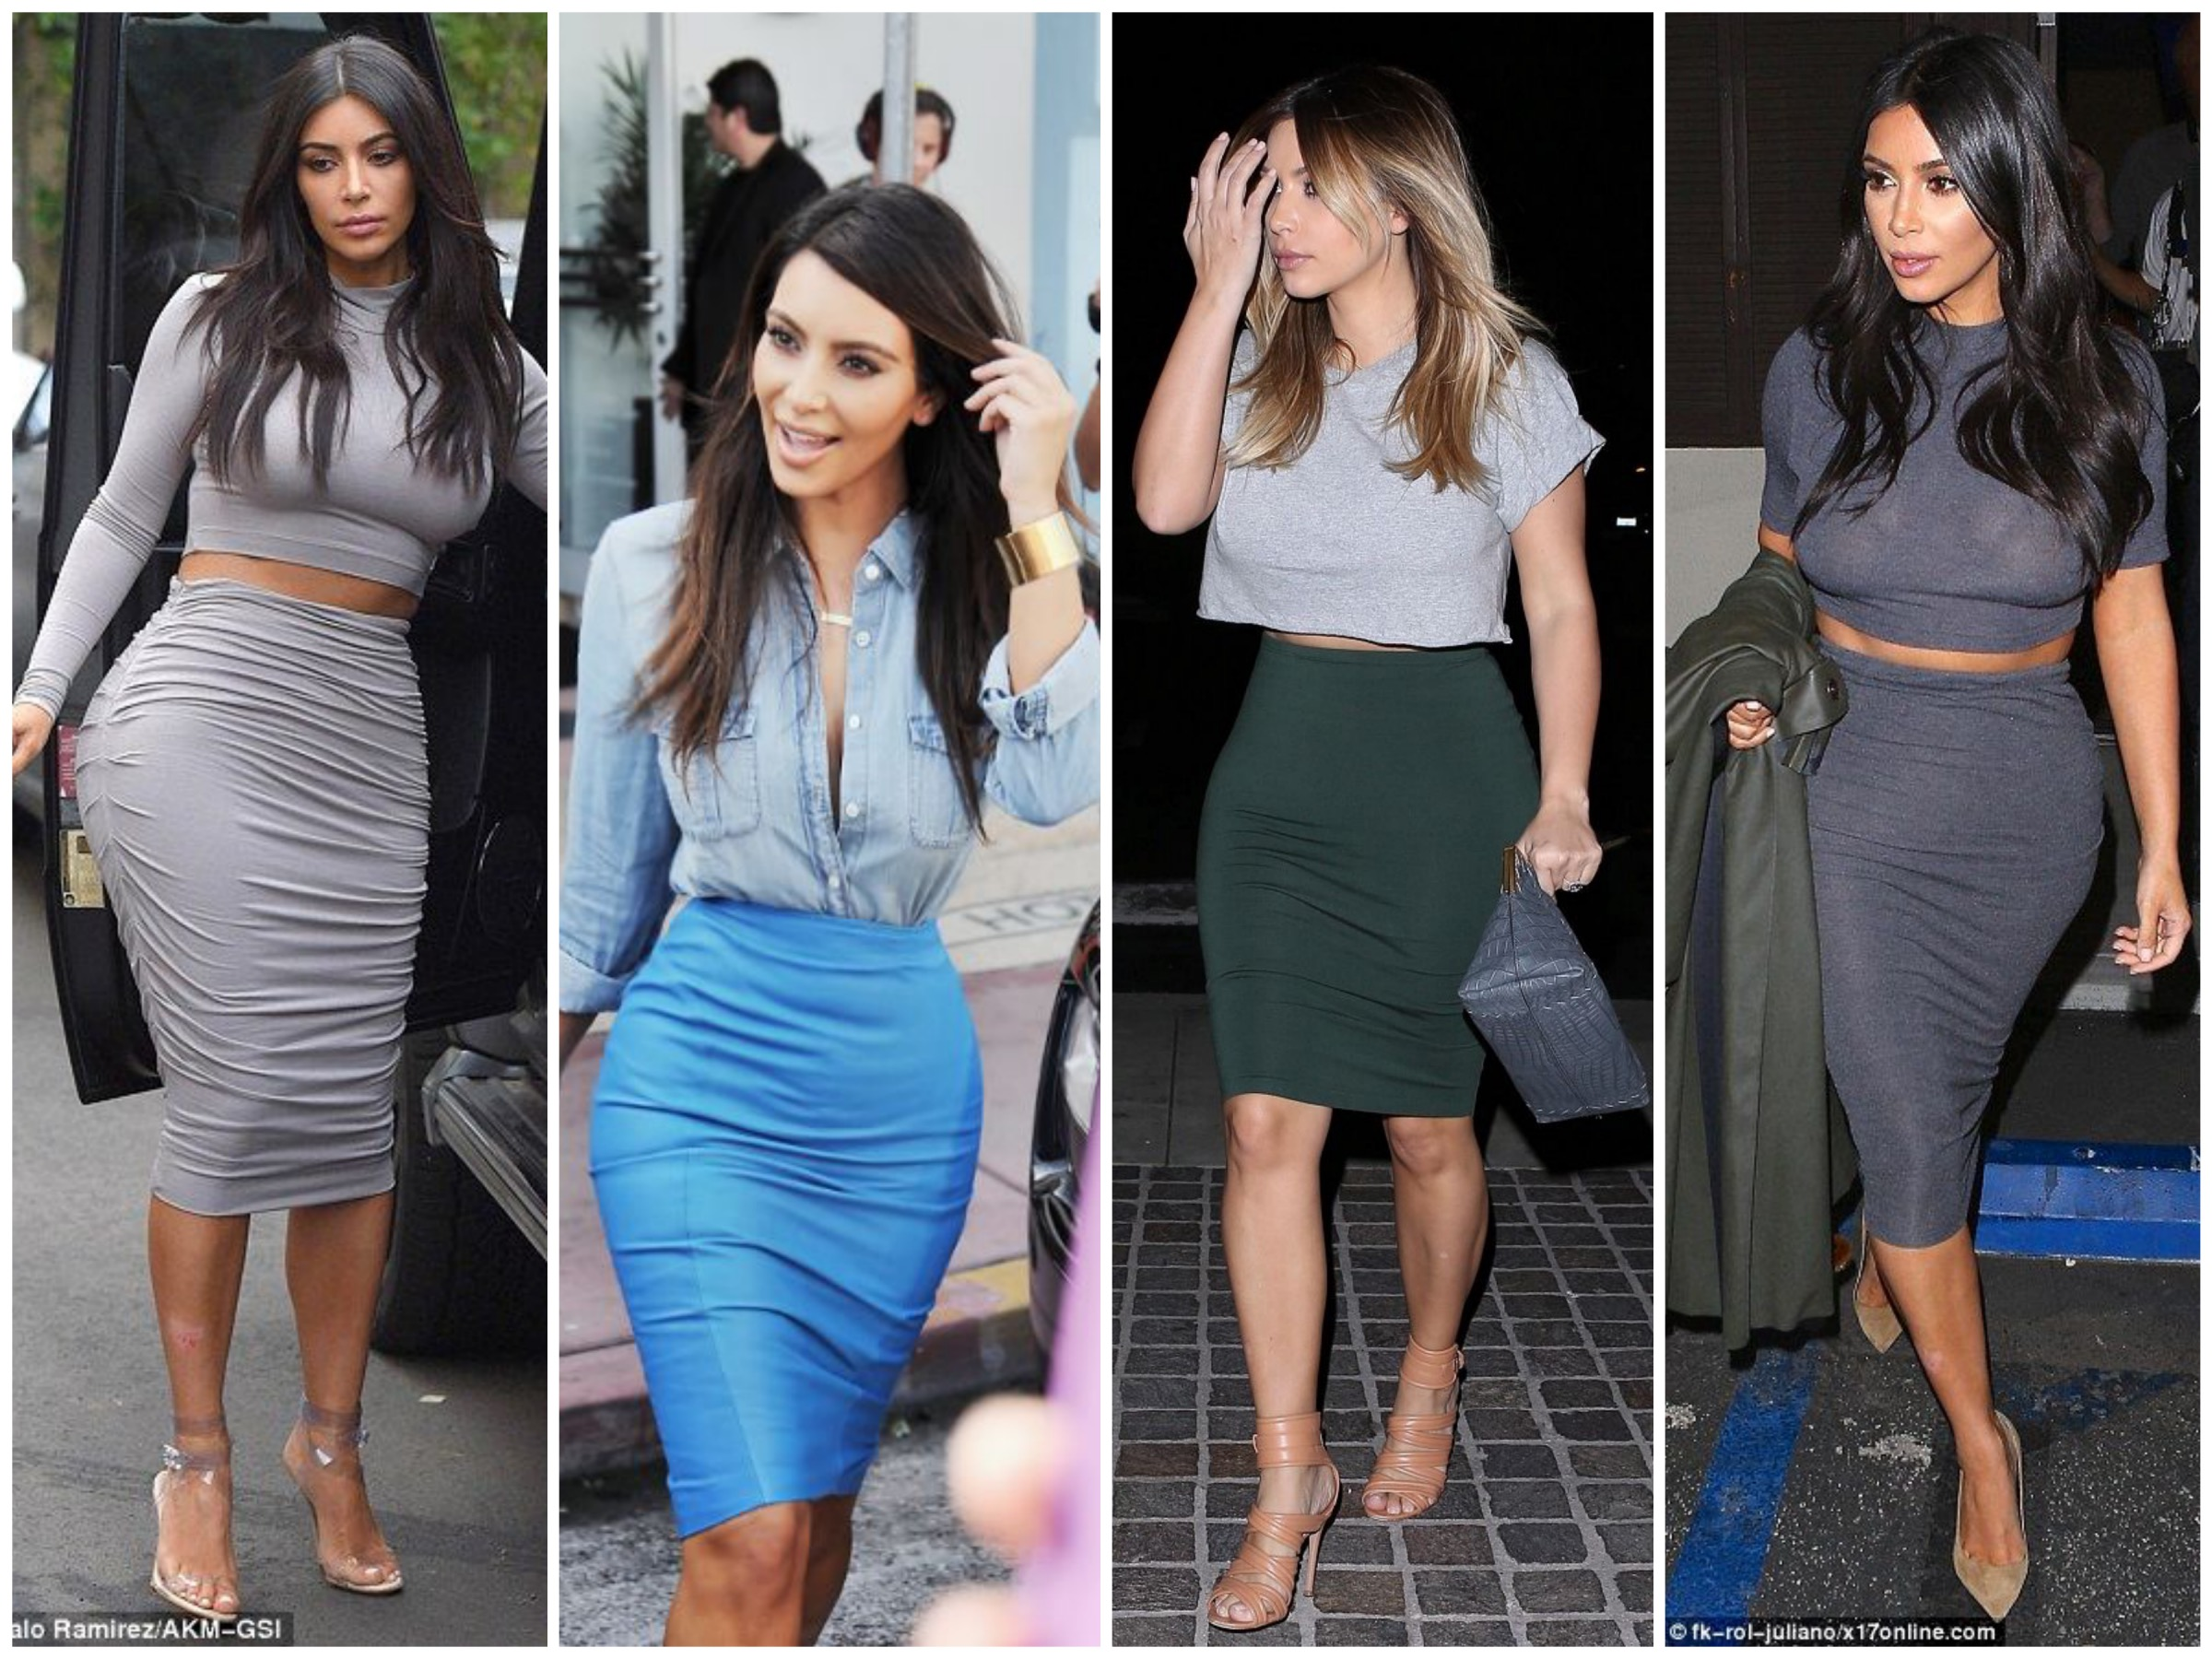 Kim's style after Kanye - Pencil skirt lover